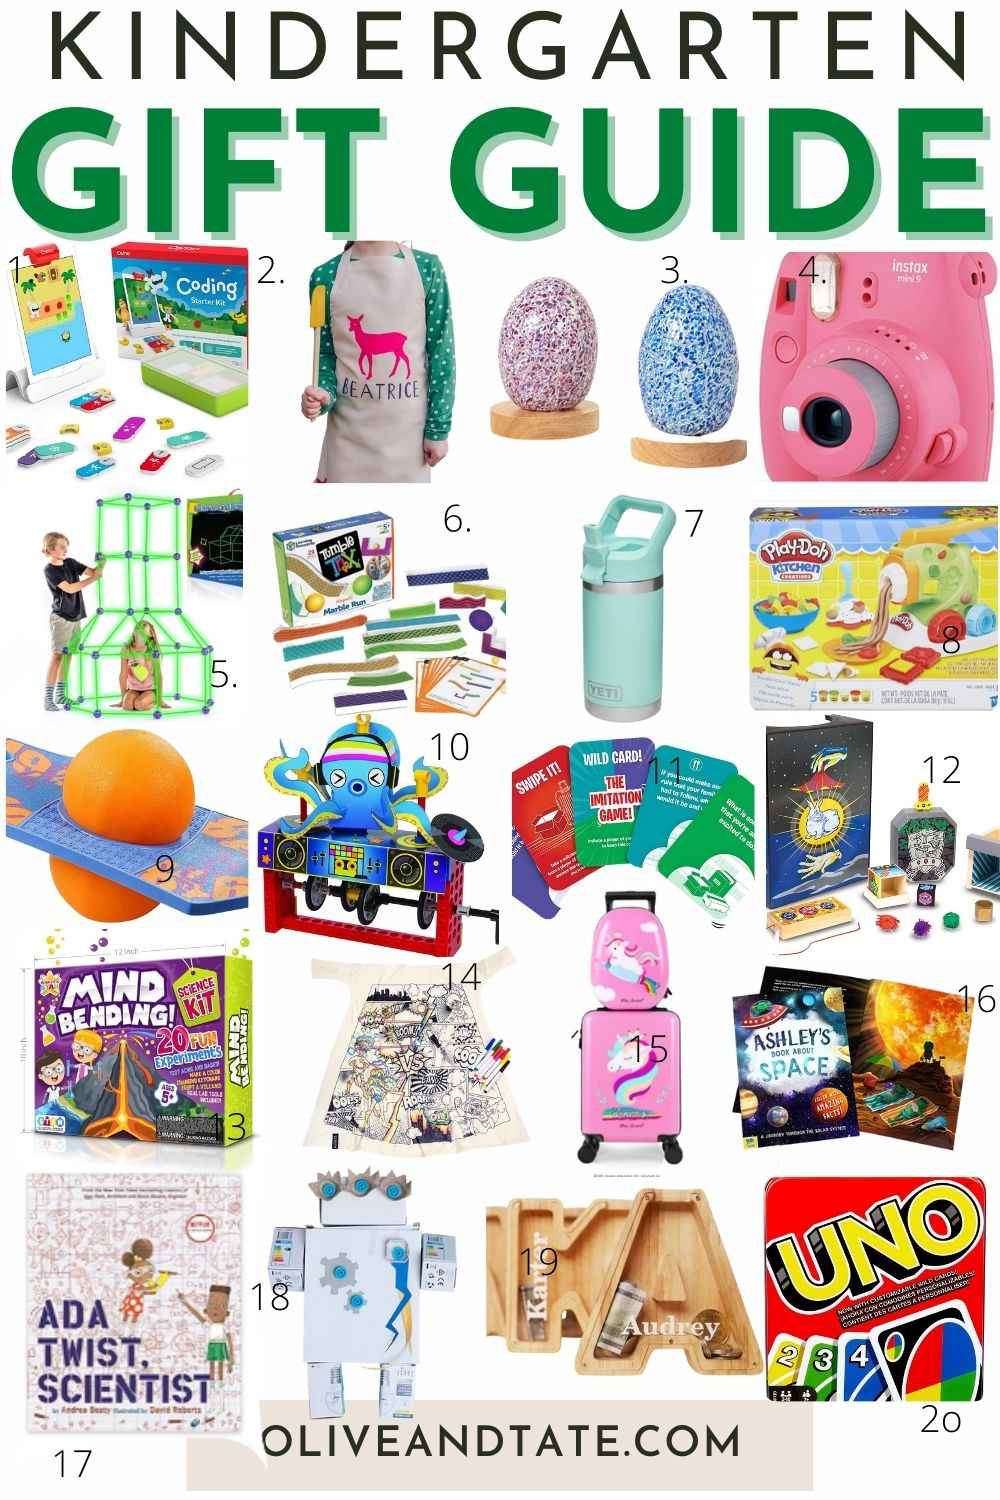 The Best Gifts for Kindergarteners